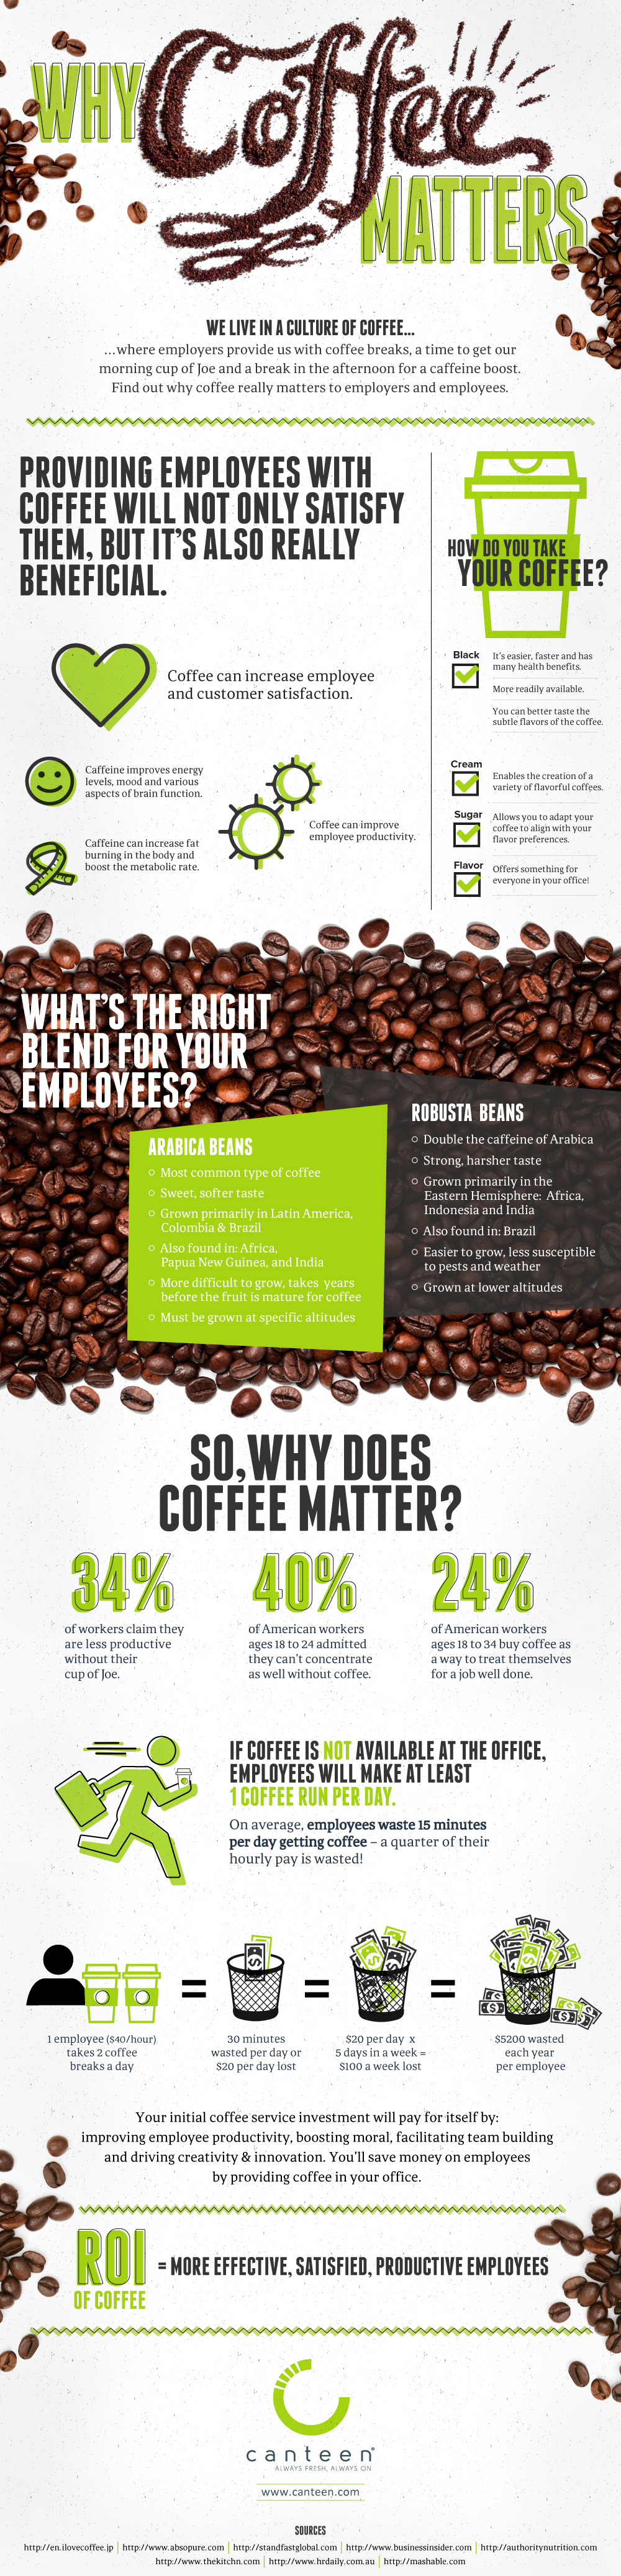 Why Coffee Matters